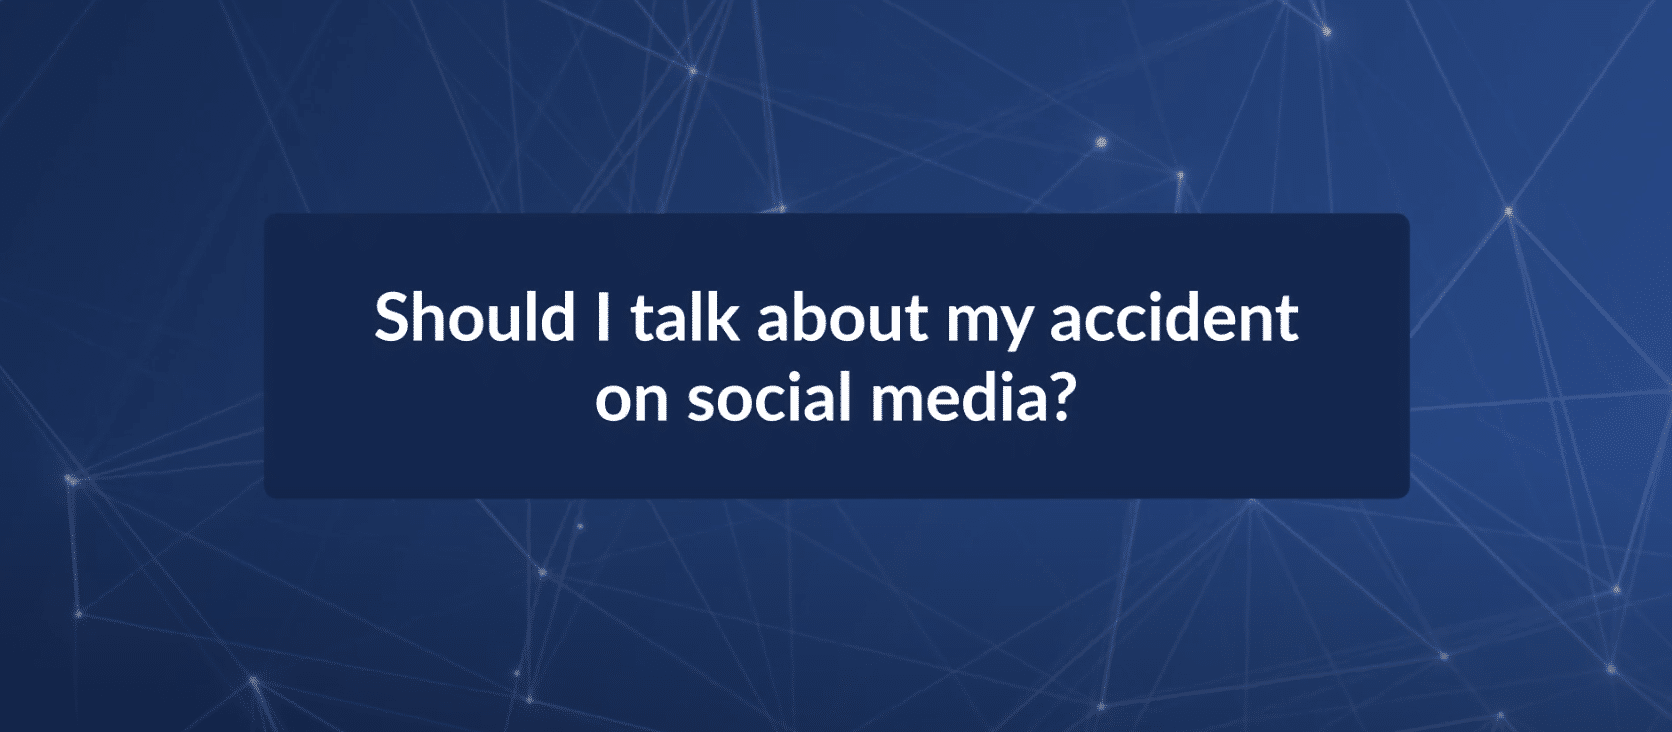 Should I Talk About My Car Accident on Social Media?